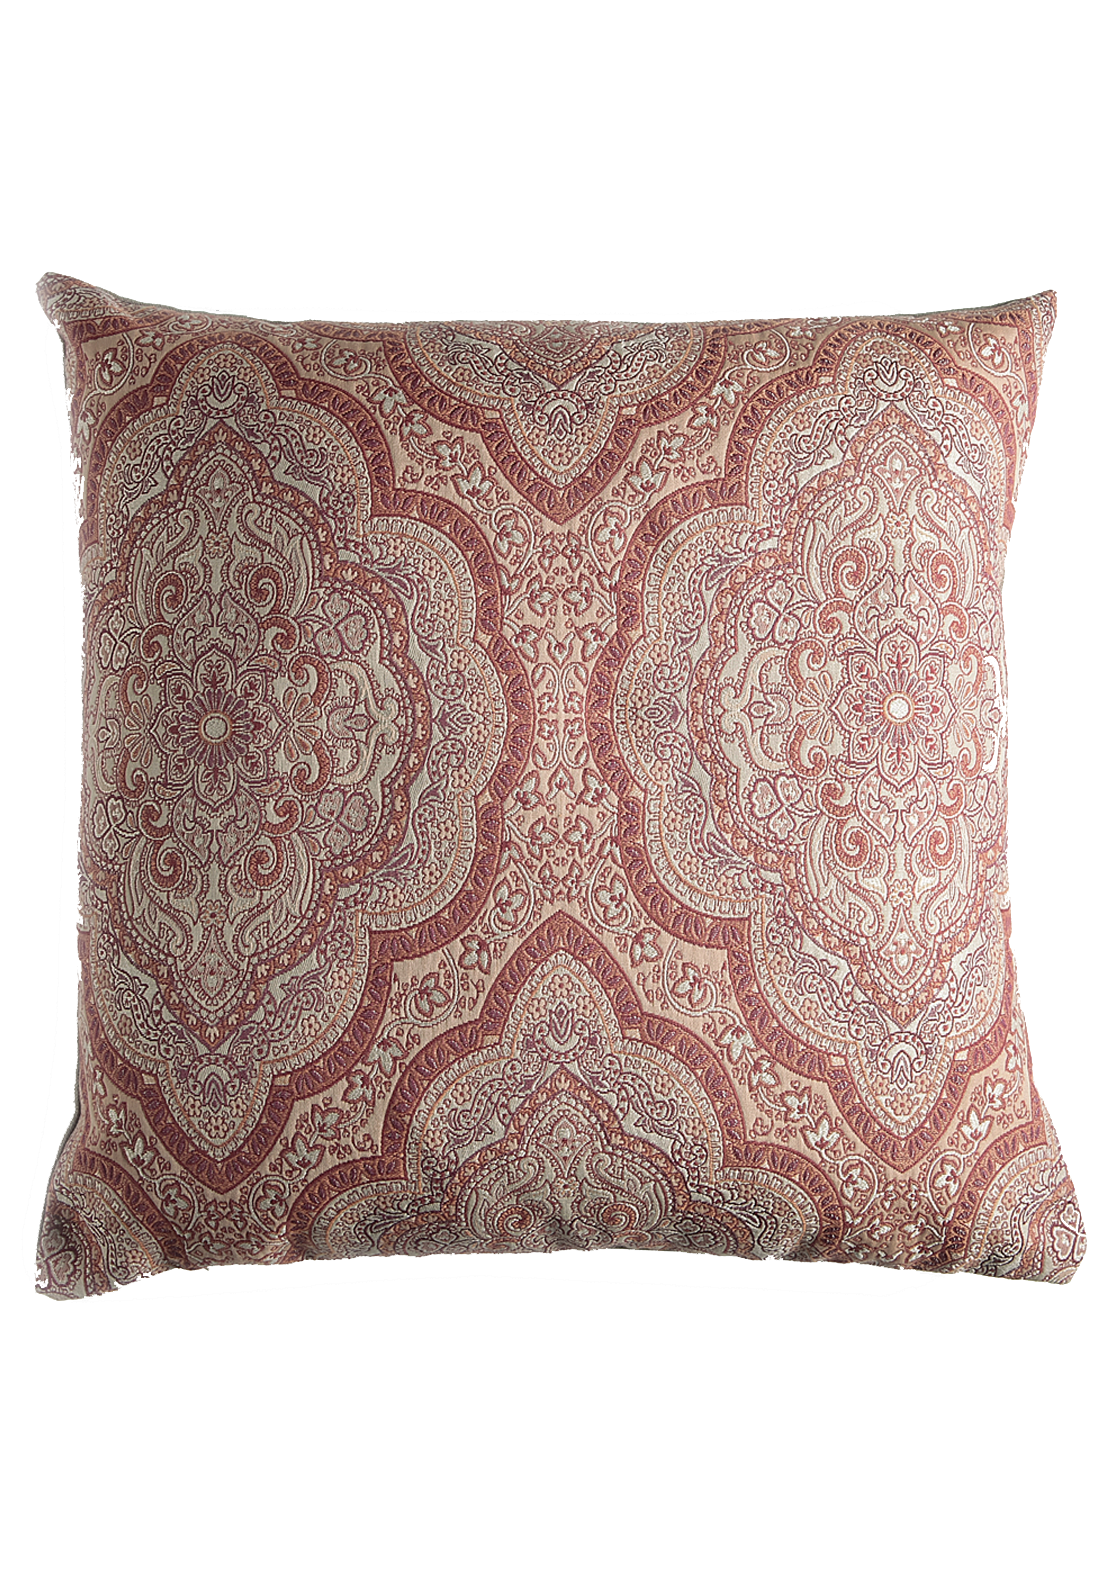 Scatterbox Sheba Paisley Feather Filled Cushion, 45 x 45cm Rust